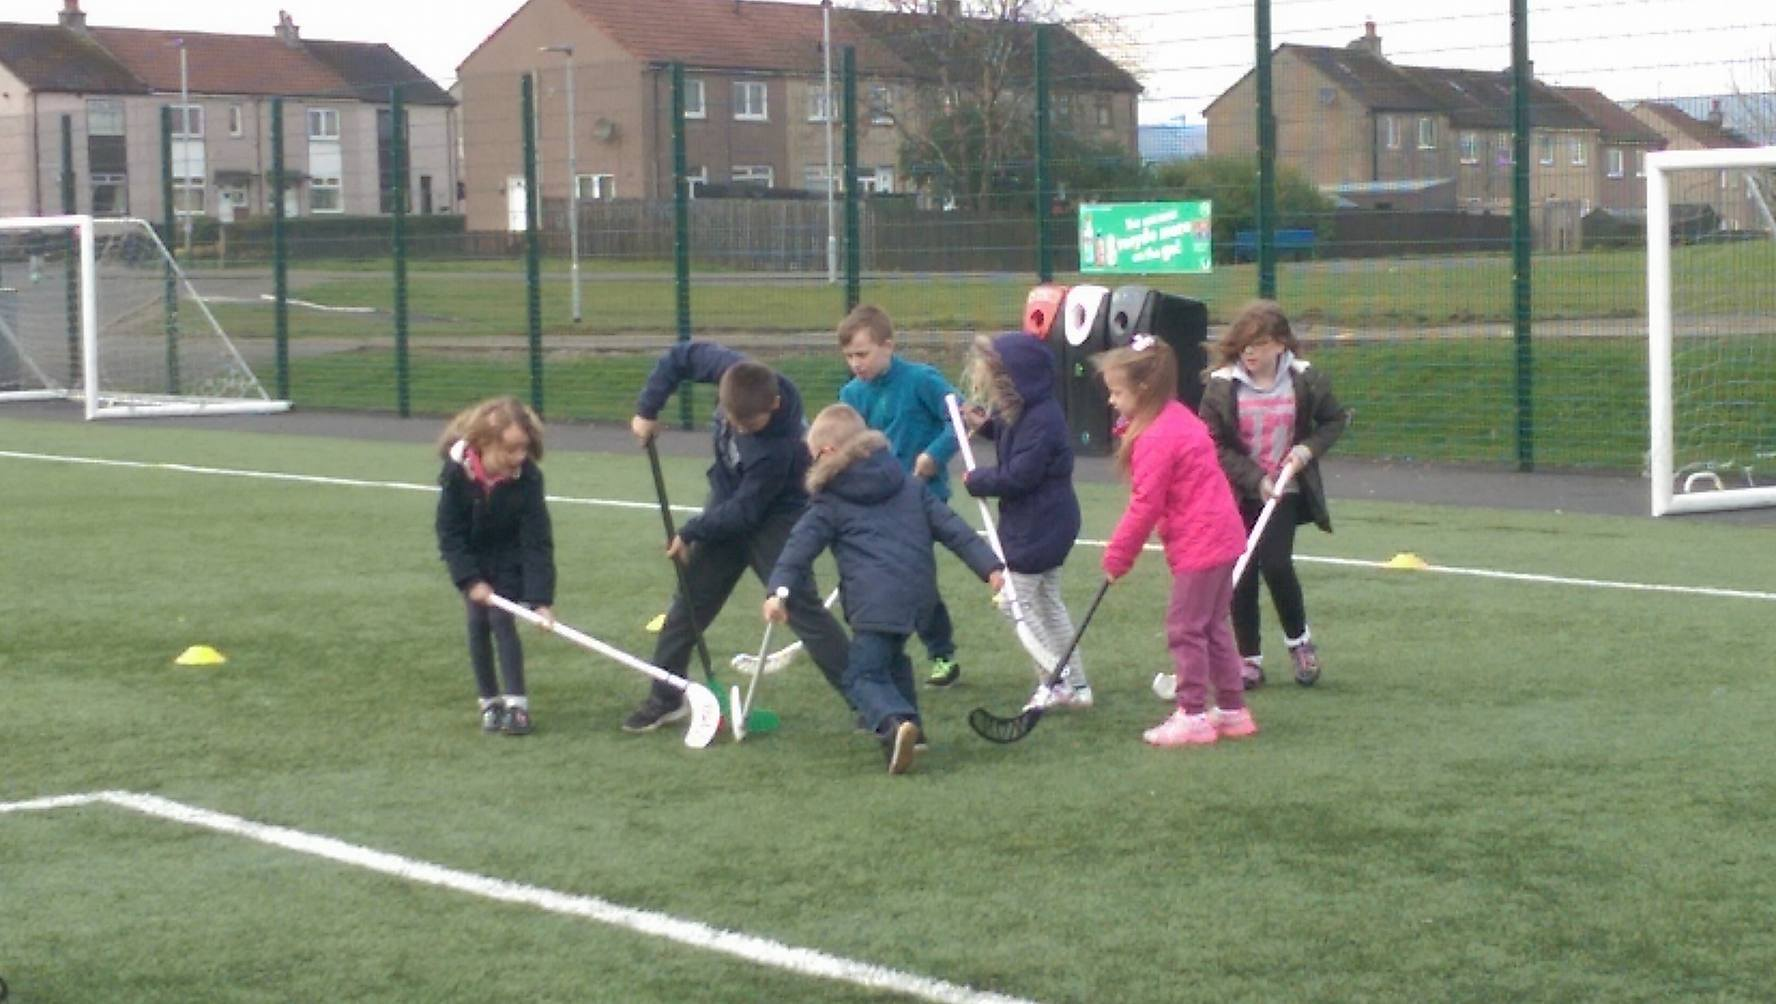 A windy start to Week 2 of Play Scheme